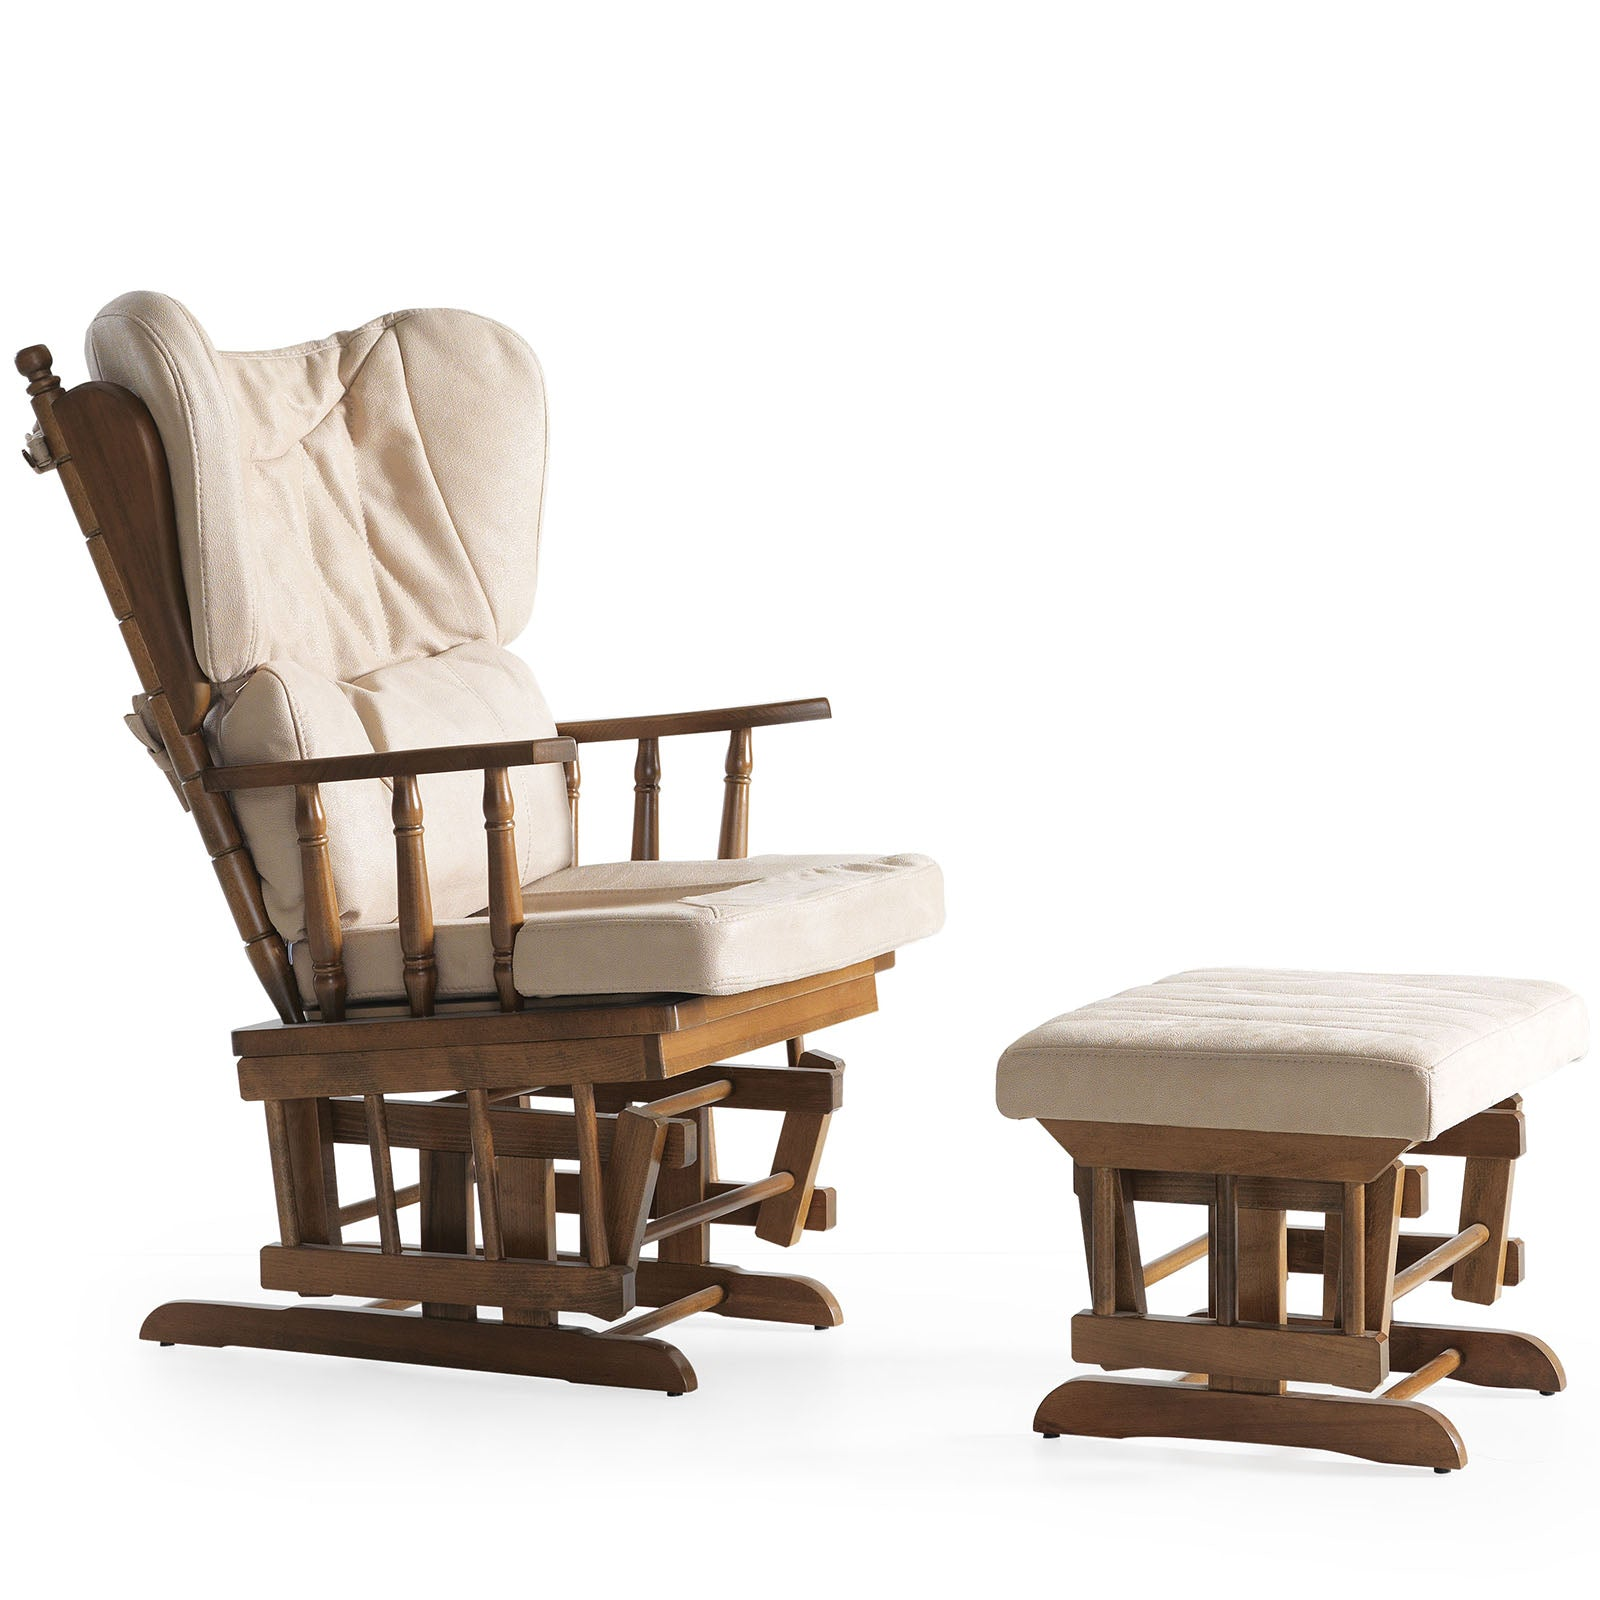 KONFOR  Rocking Chair and rocking  Pouf  KON-B001